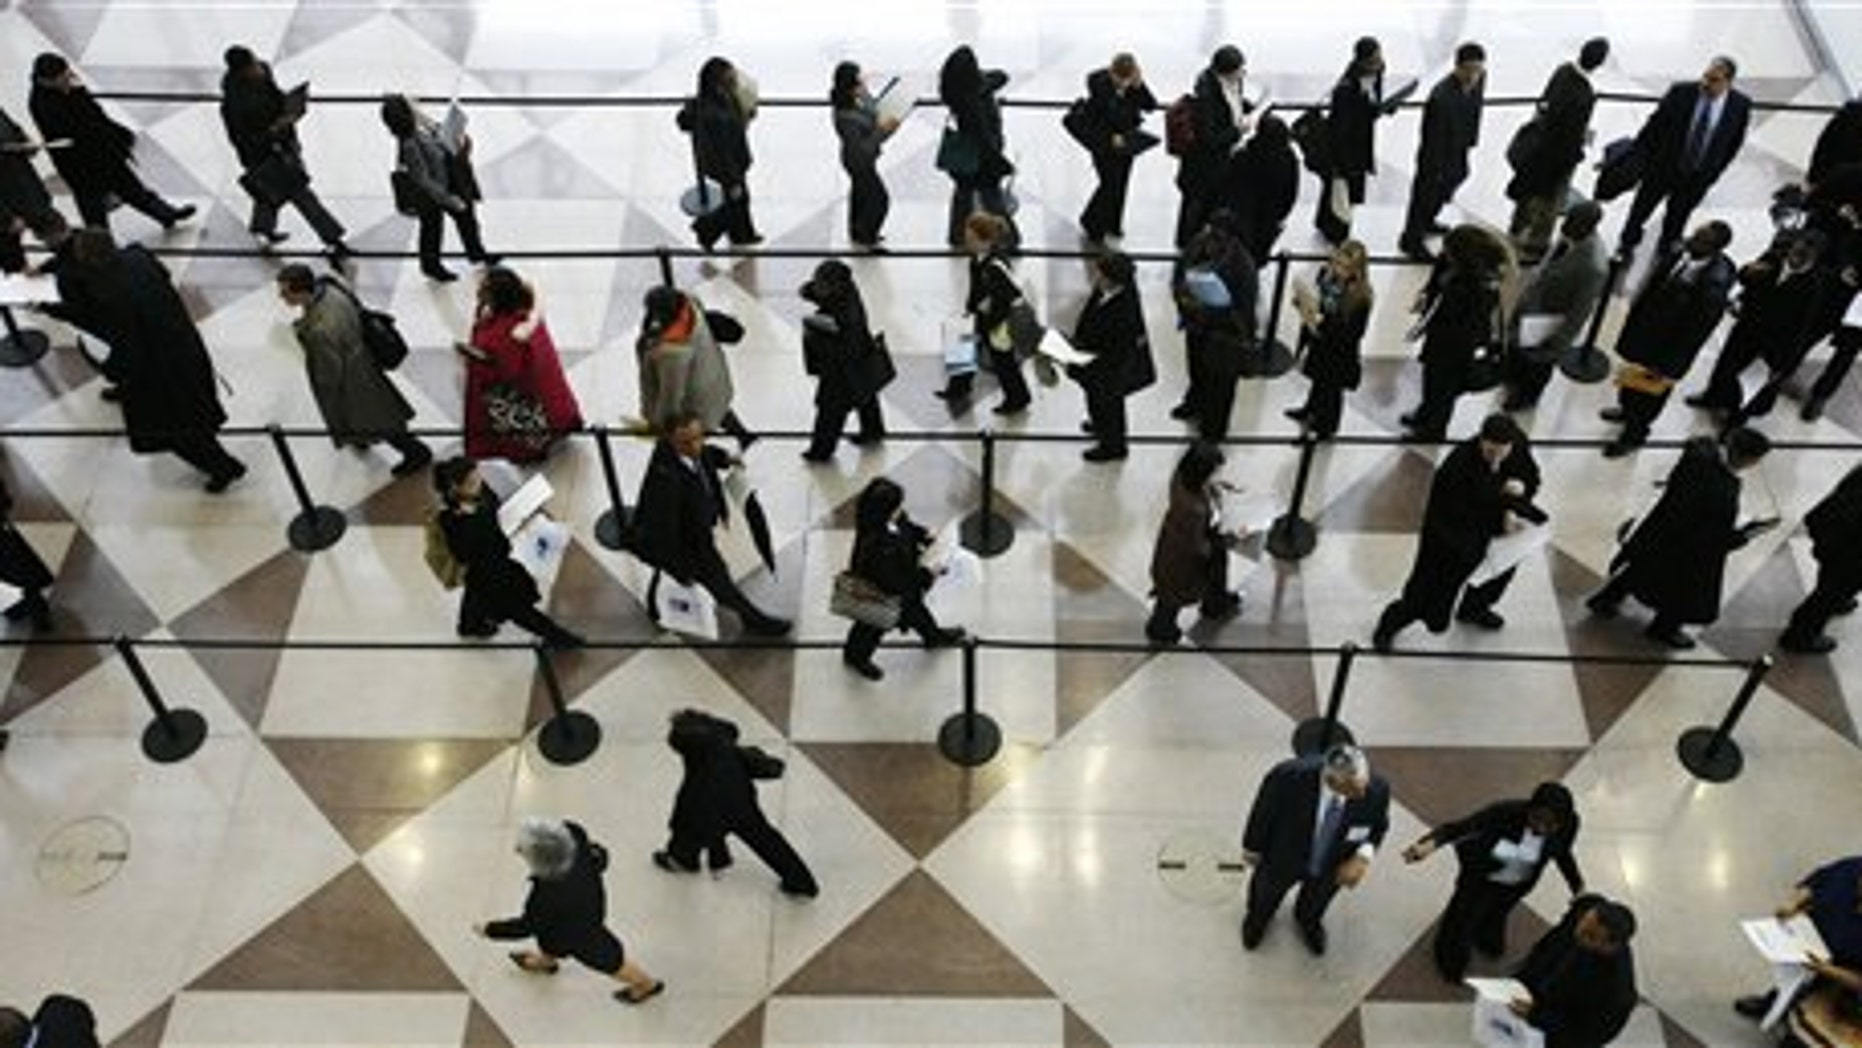 In this March 20, 2009, file photo, a line of job applicants is shown at the CUNY Big Apple Job Fair in New York.